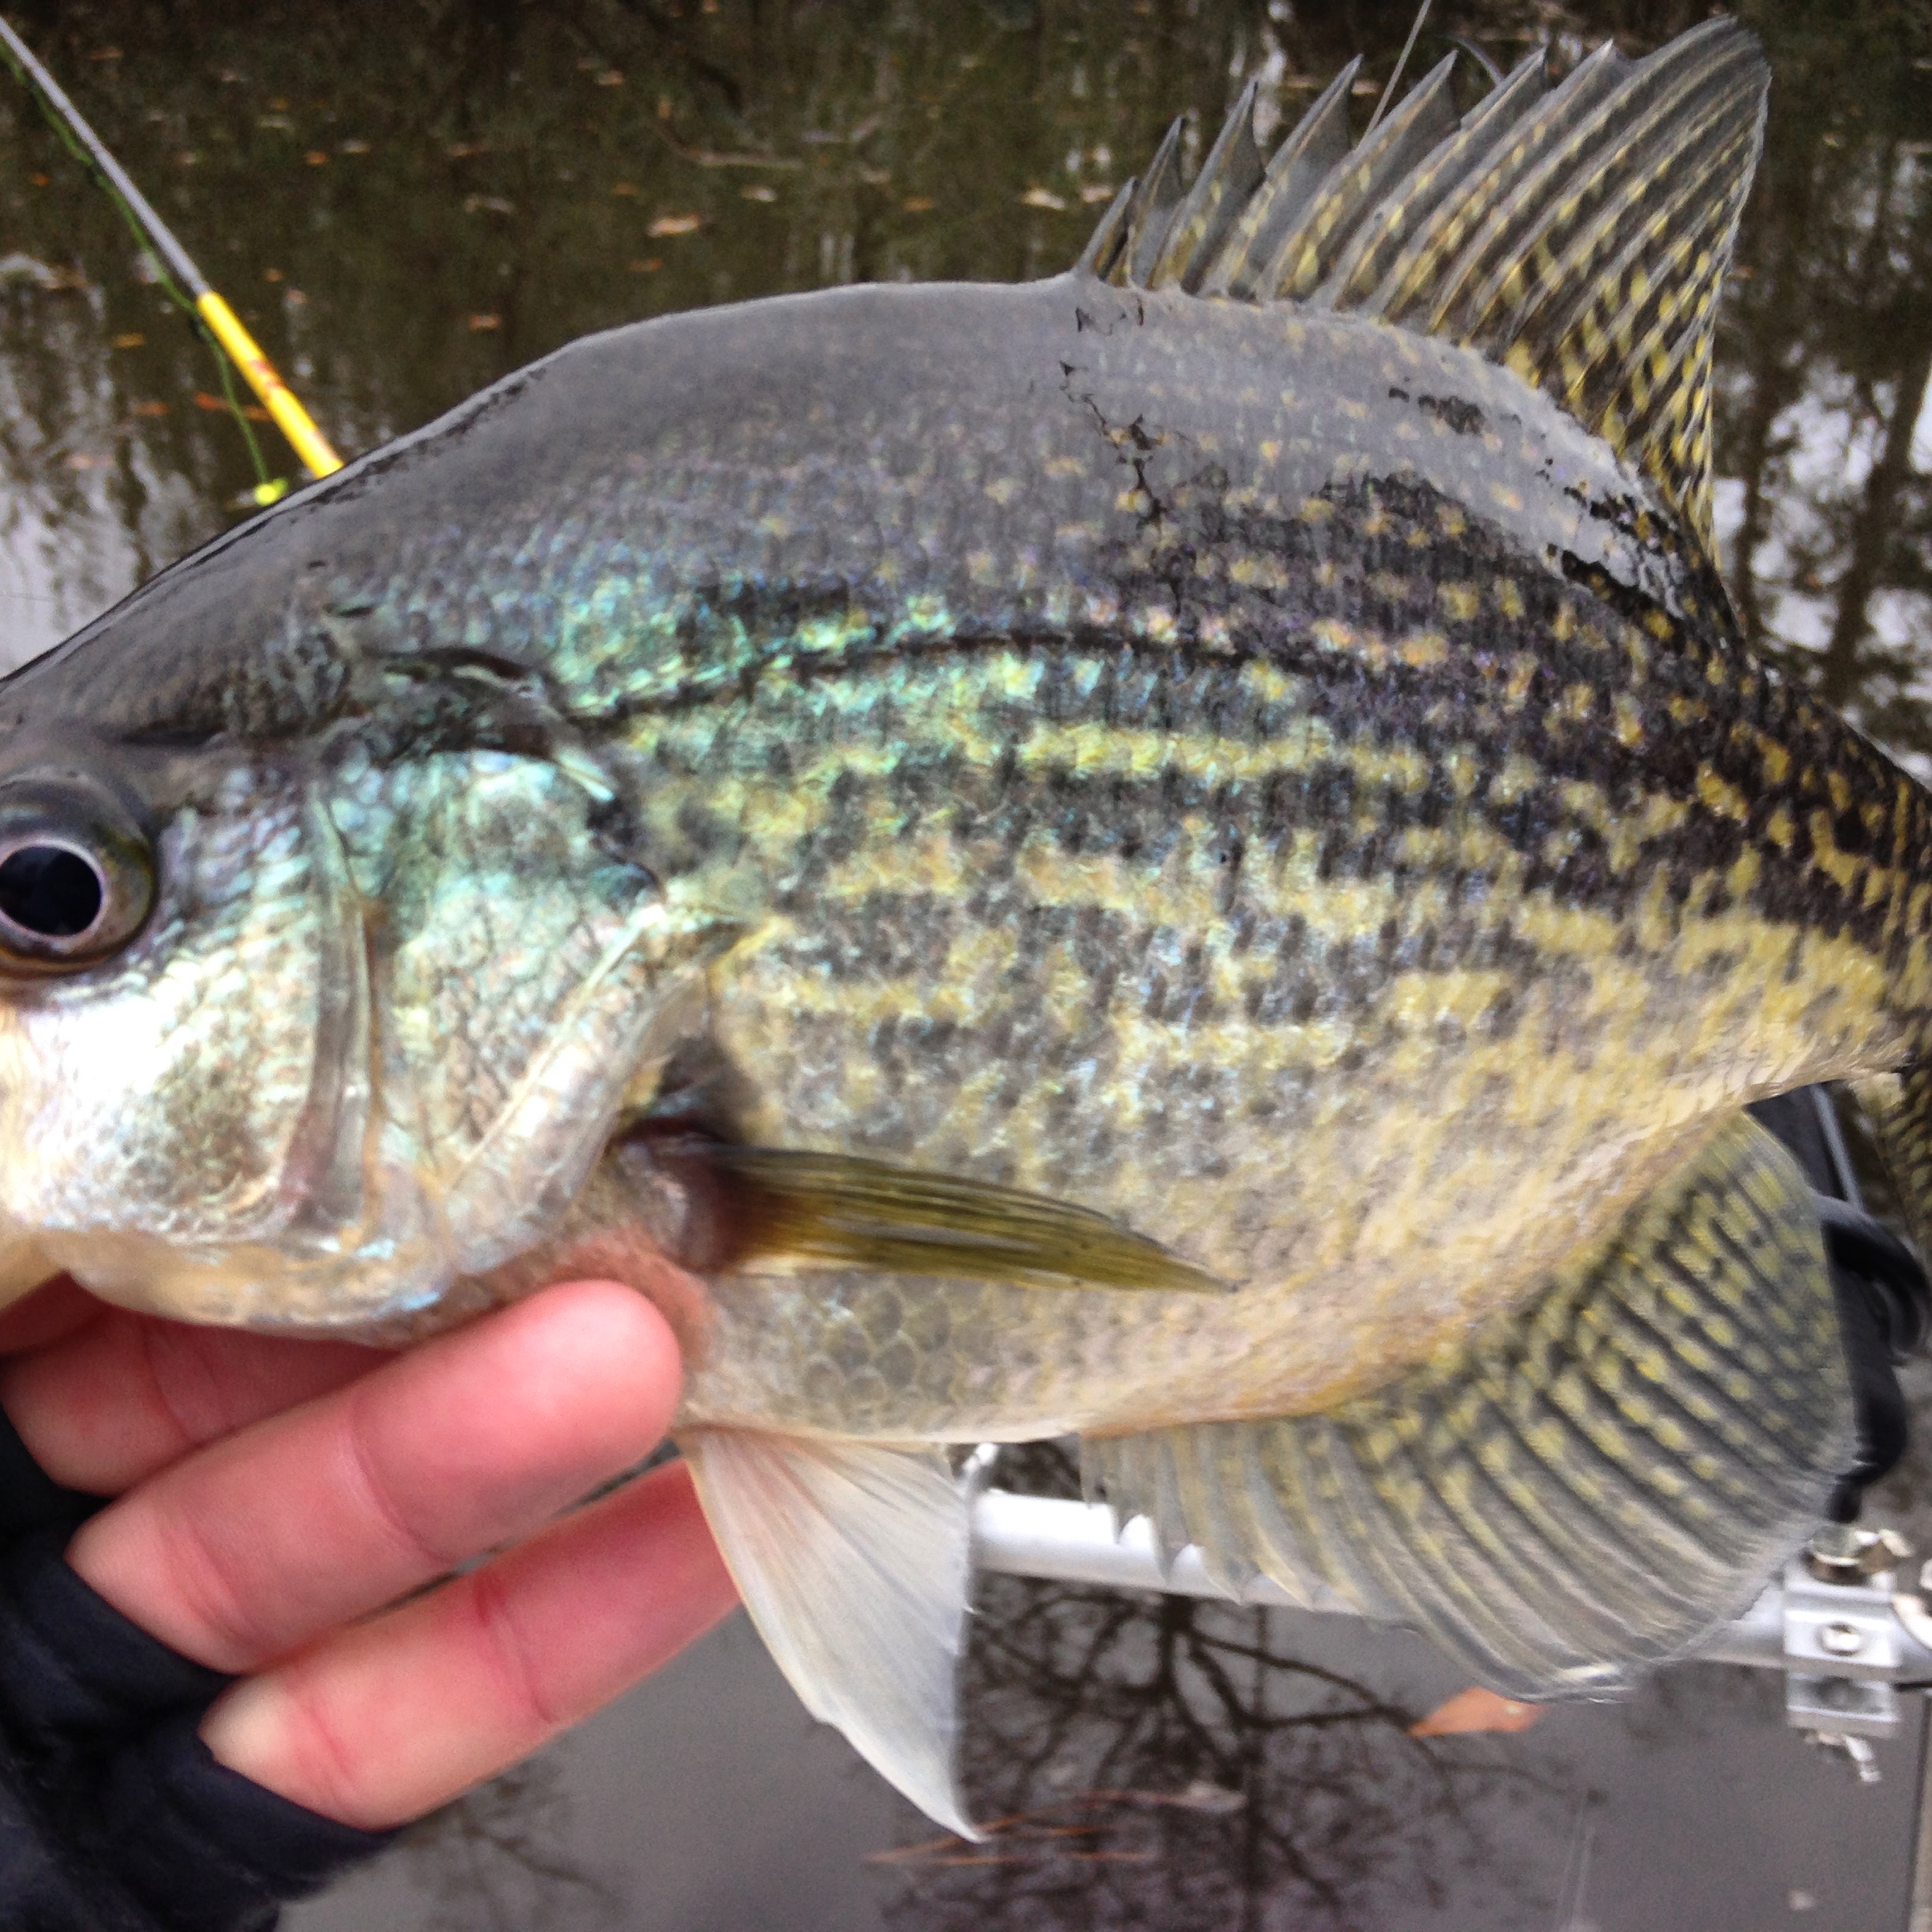 River crappie 2 at a time fishibx eastern nc fishing guide for Northeast saltwater fishing reports